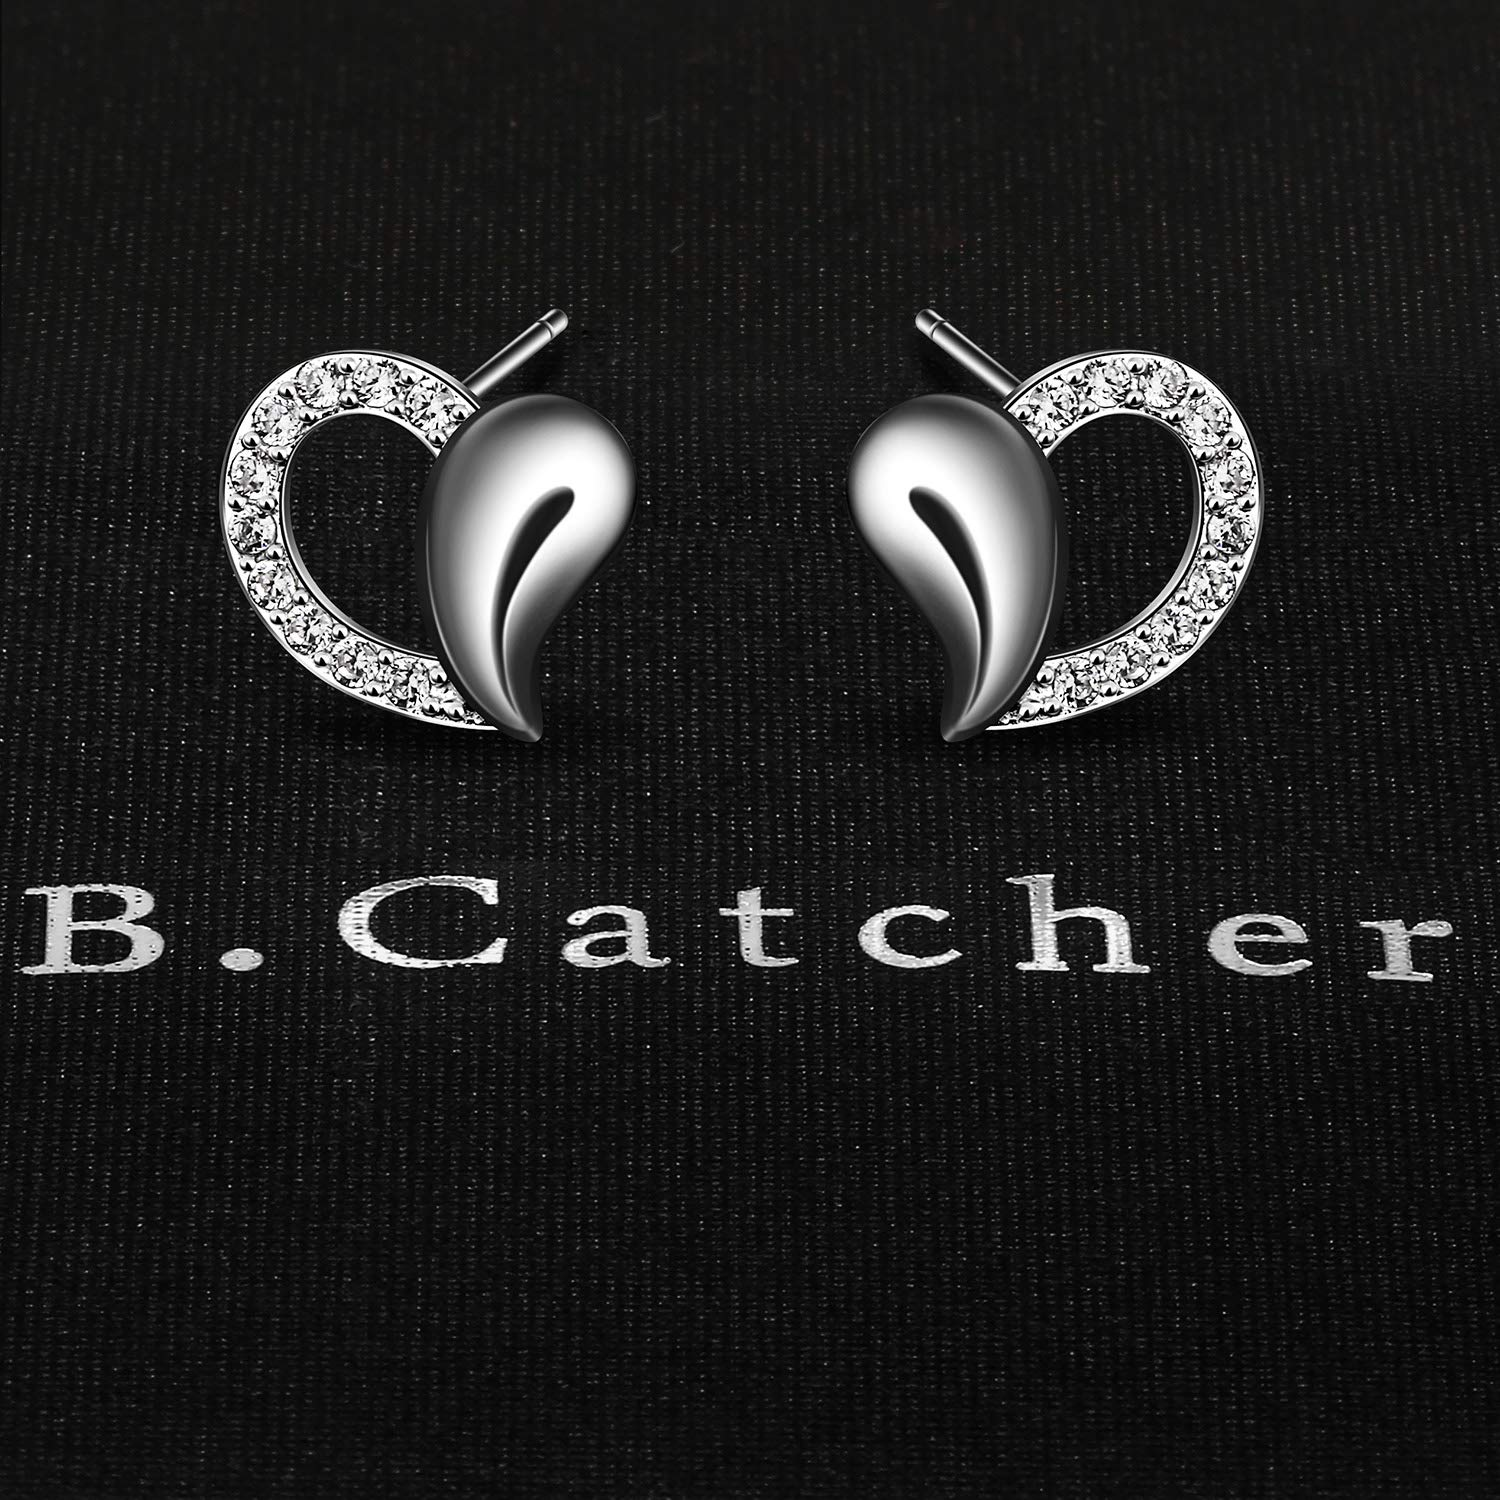 B.Catcher Heart Earrings Women Studs 925 Sterling Silver Jewelry Gift for her Birthday Gift Hypoallergenic material with Gift box